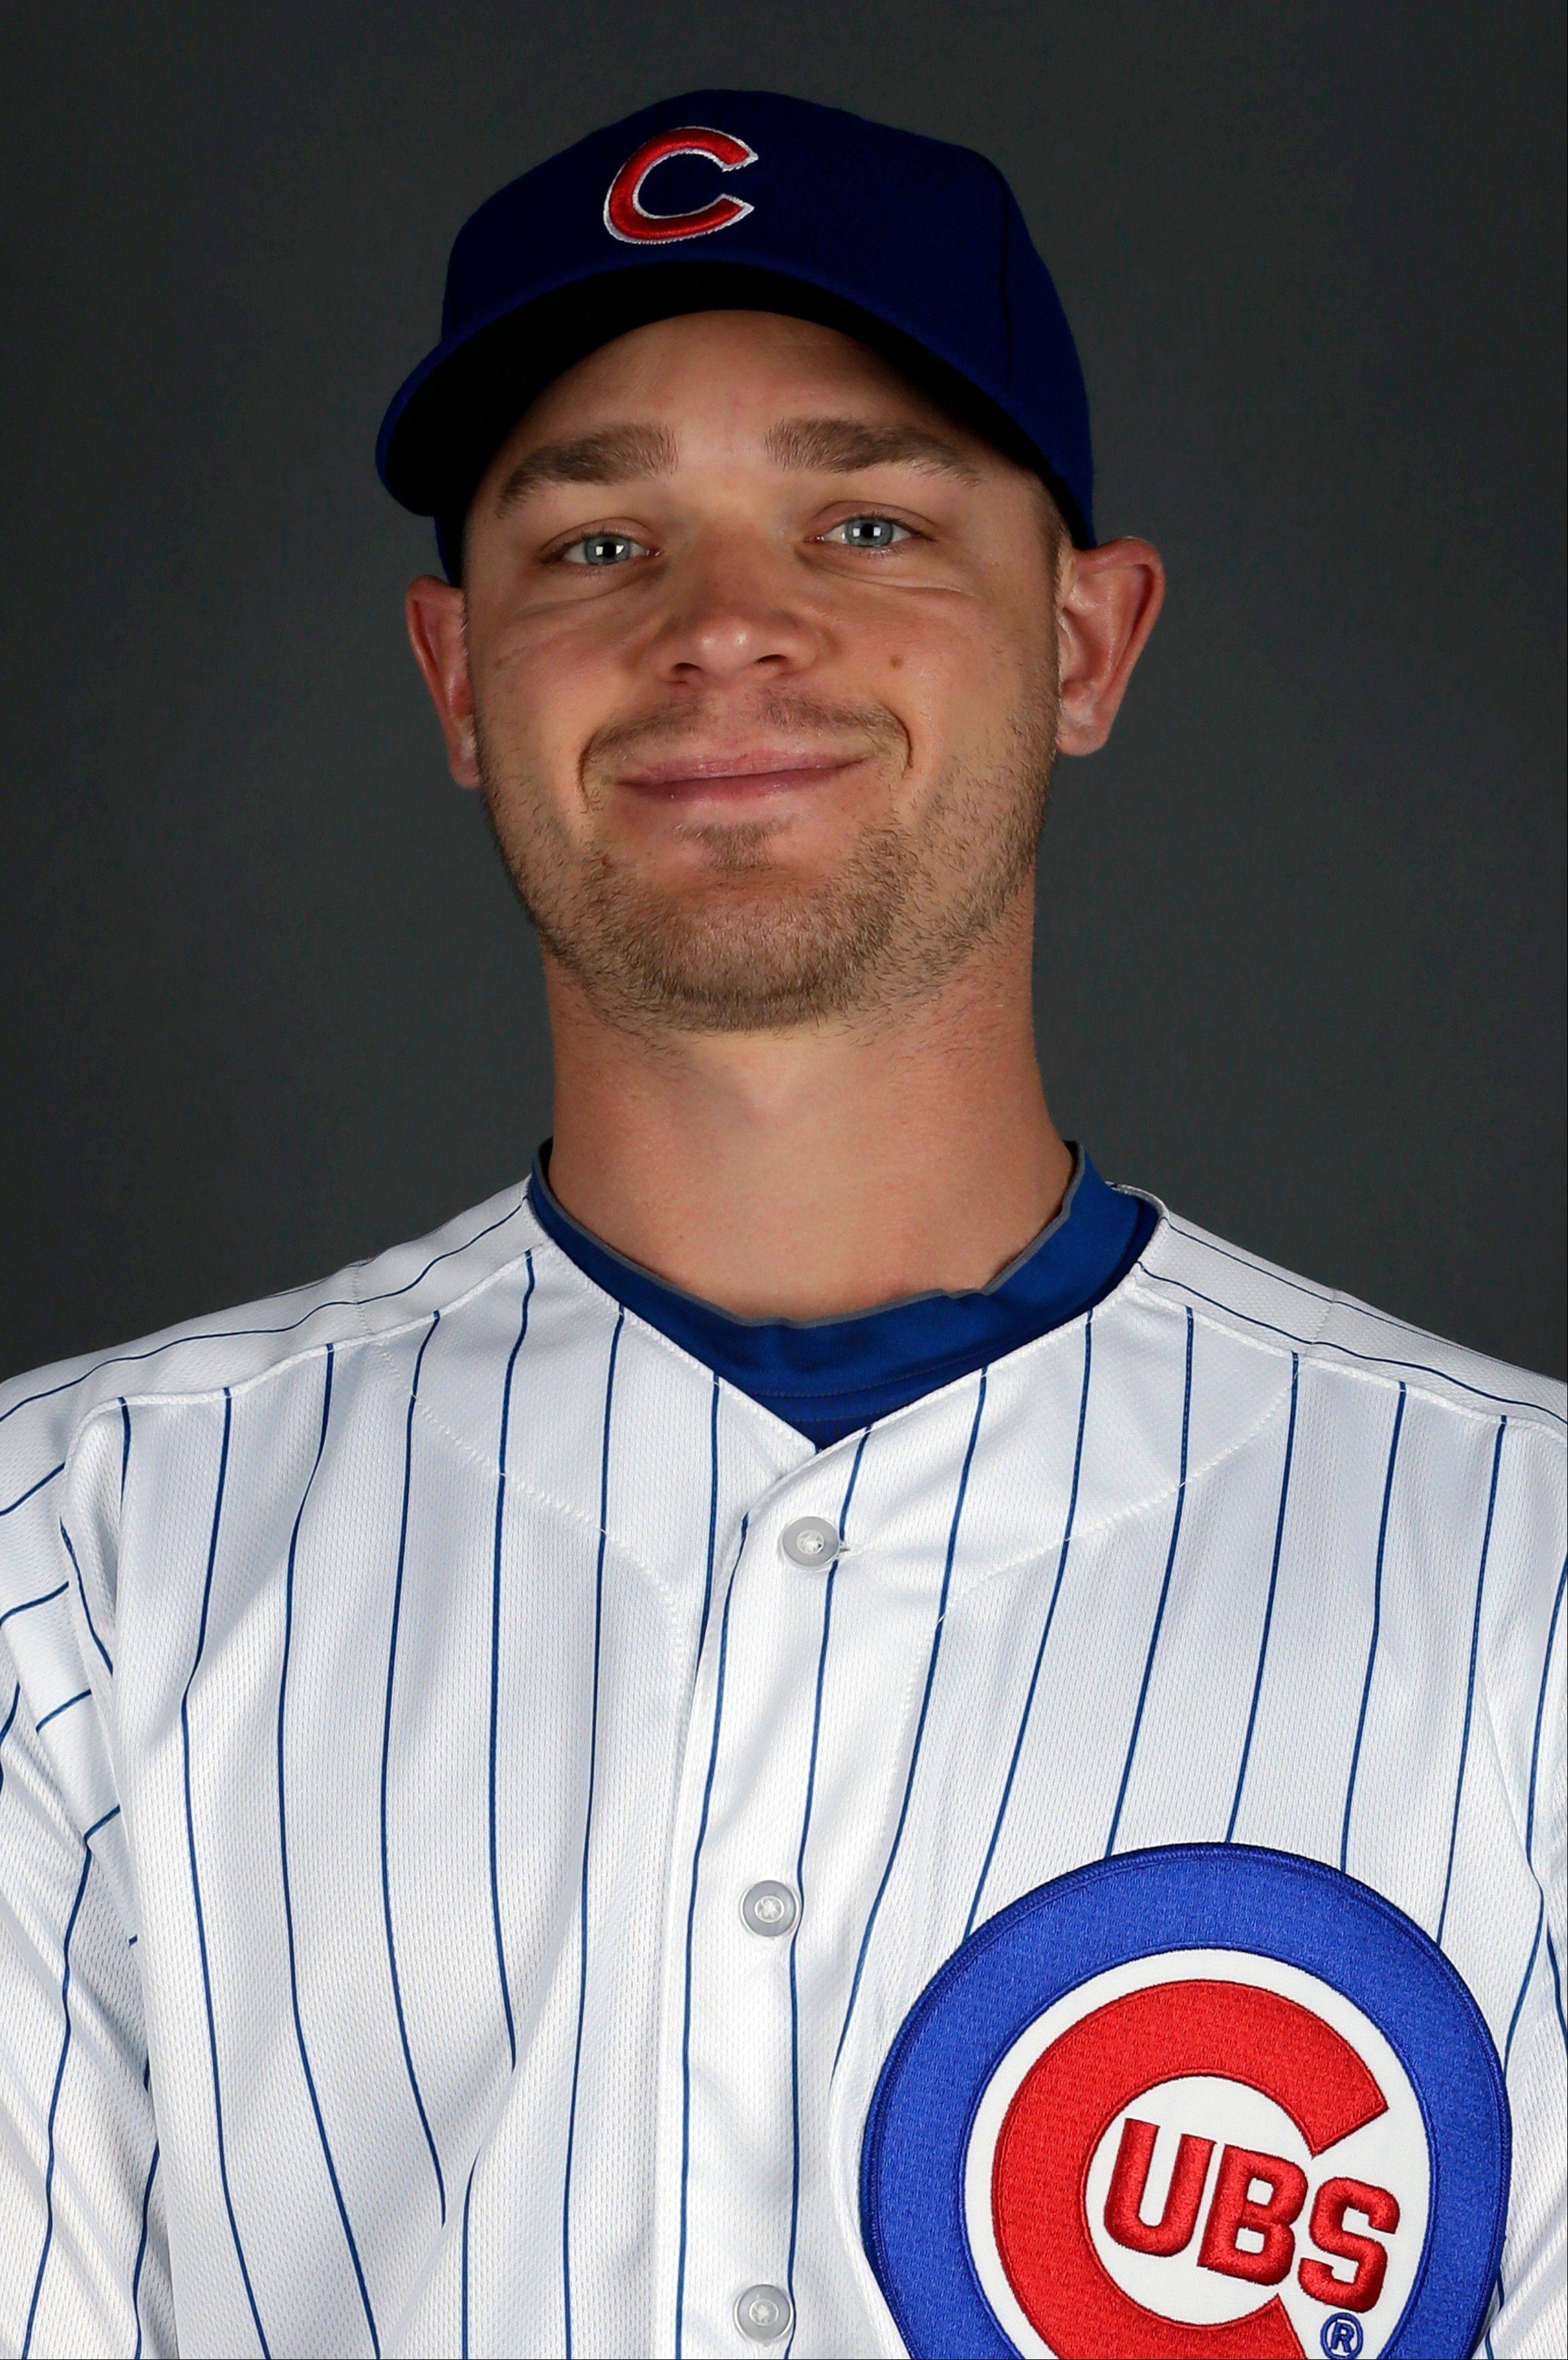 Cubs pitcher Michael Bowden